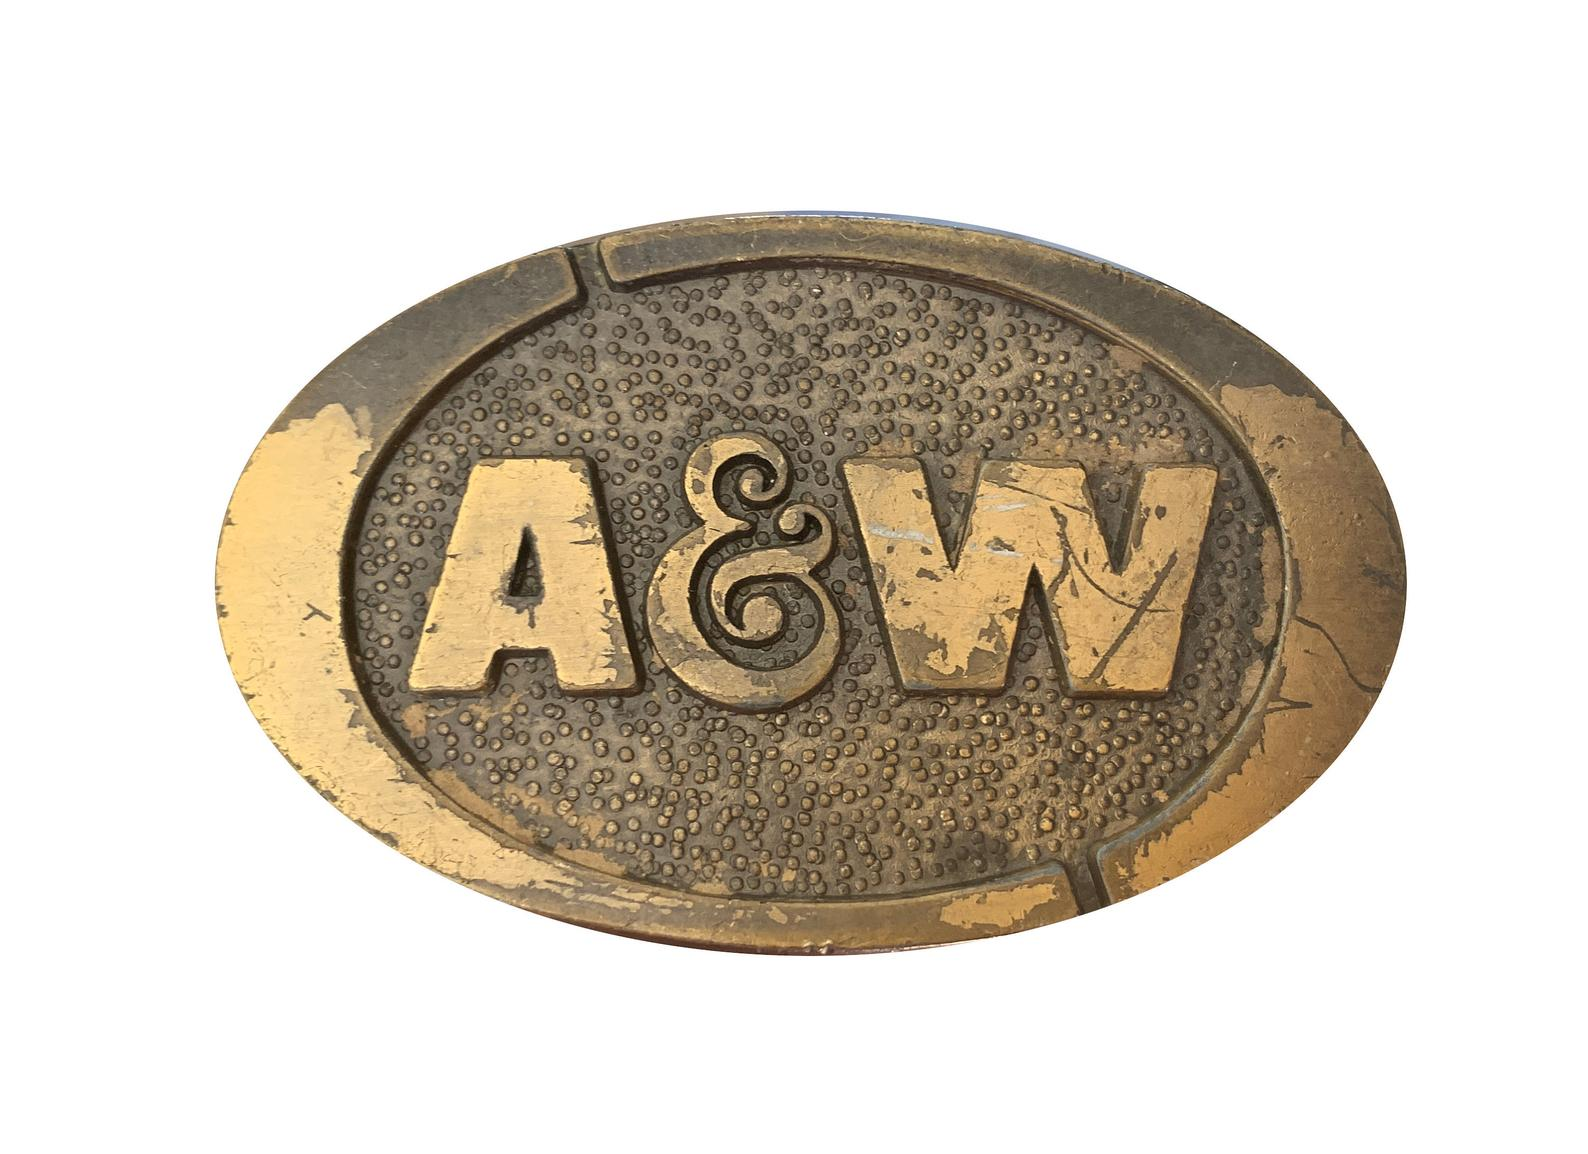 Solid brass belt buckle with A&W logo.